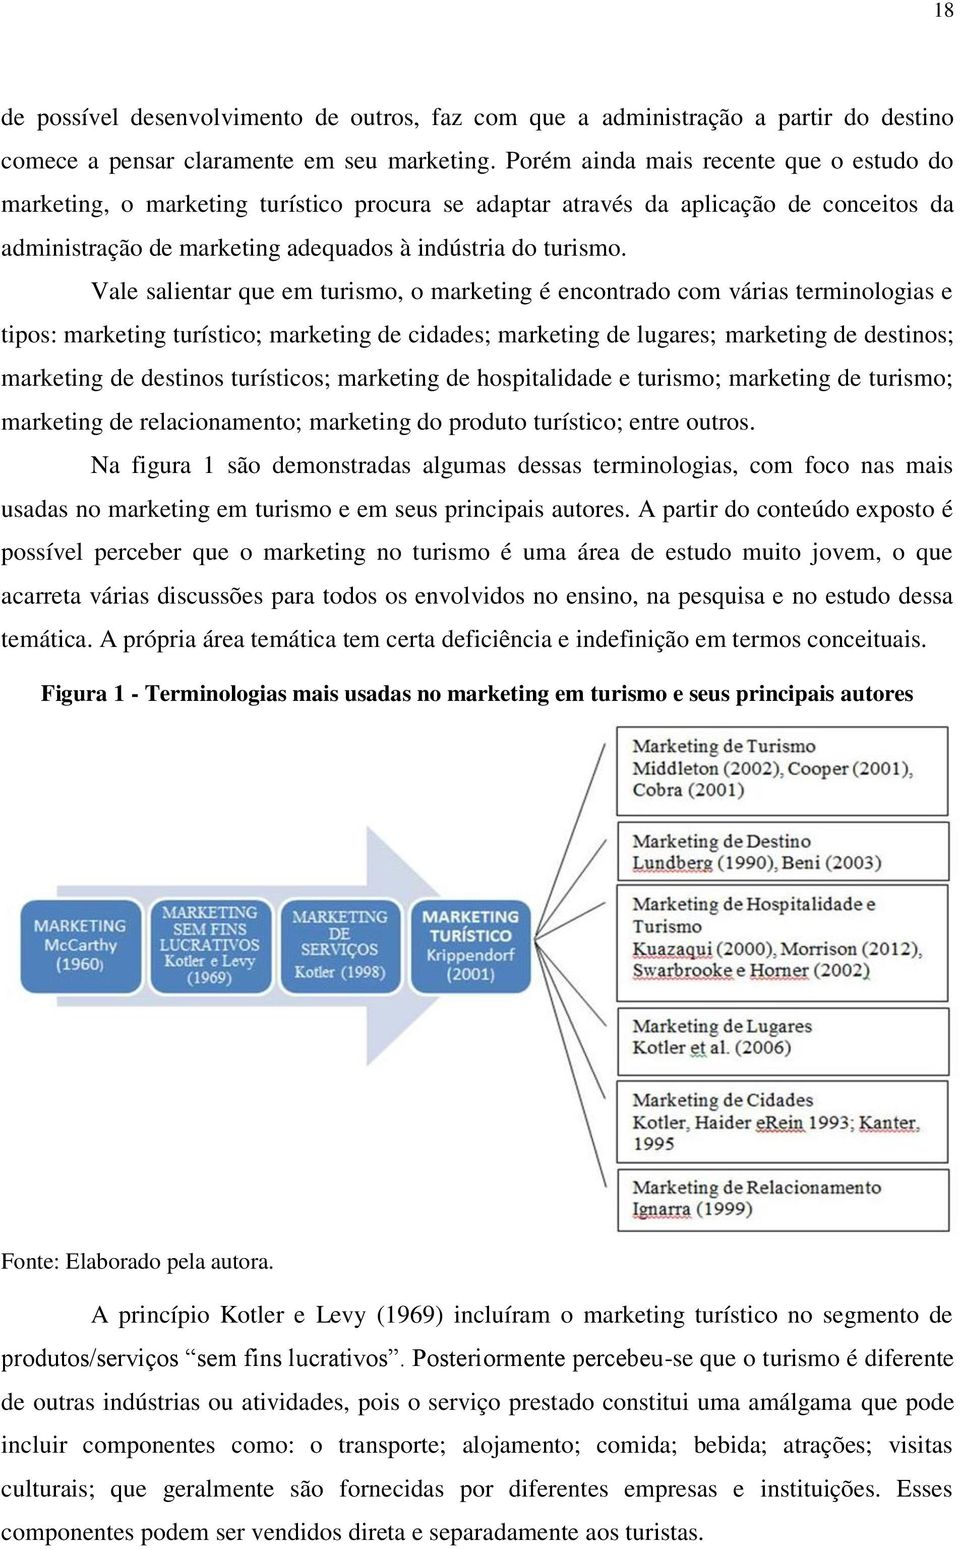 Vale salientar que em turismo, o marketing é encontrado com várias terminologias e tipos: marketing turístico; marketing de cidades; marketing de lugares; marketing de destinos; marketing de destinos